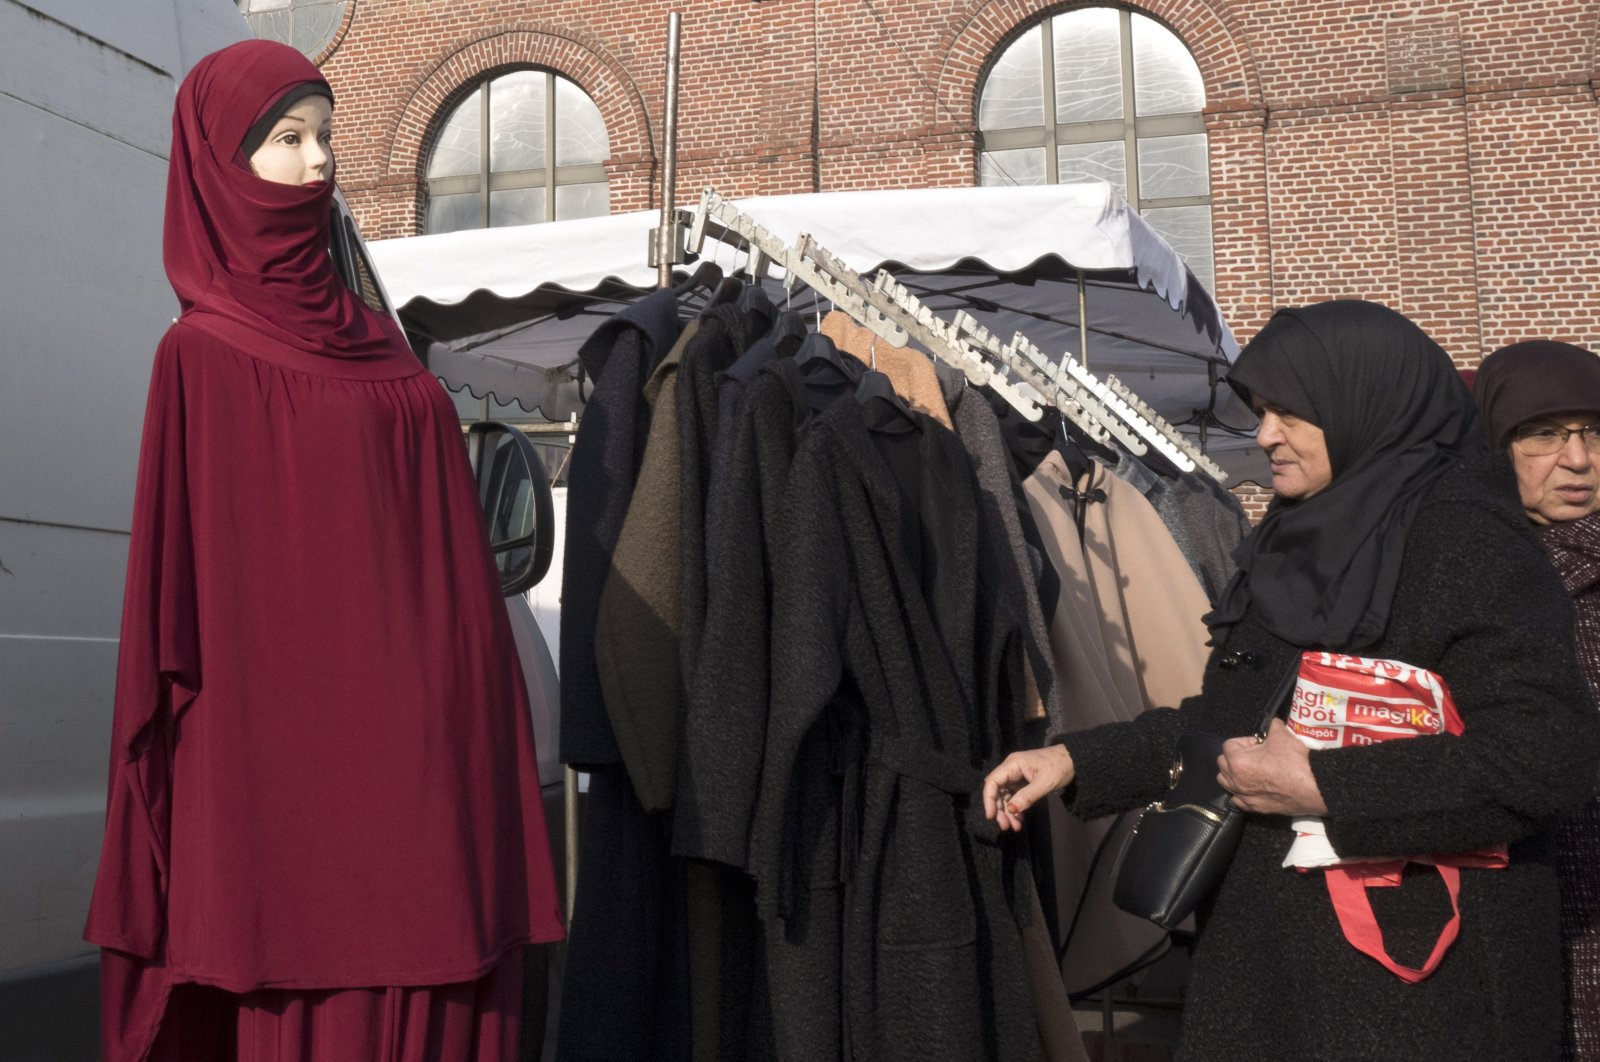 Women walk past a mannequin presenting Muslim fashion at an open-air market in Lille, northern France, Oct. 31, 2019. (AP Photo)